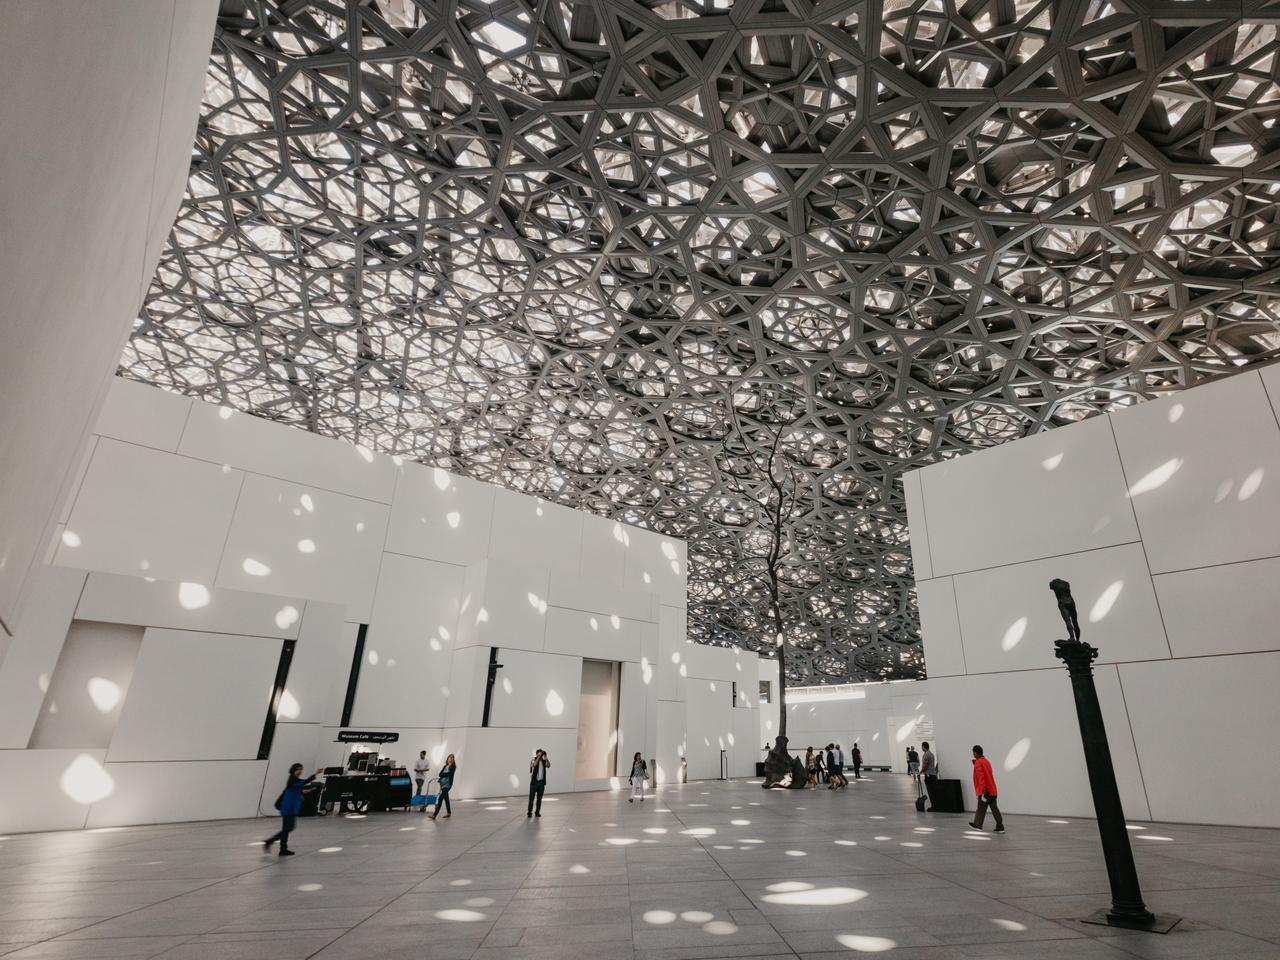 "Abu Dhabi, United Arab Emirates, JANUARY 06, 2019: Interior of the Louvre Museum, Abu Dhabi, showing reflections of the ""Rain of Light"" dome - Image"